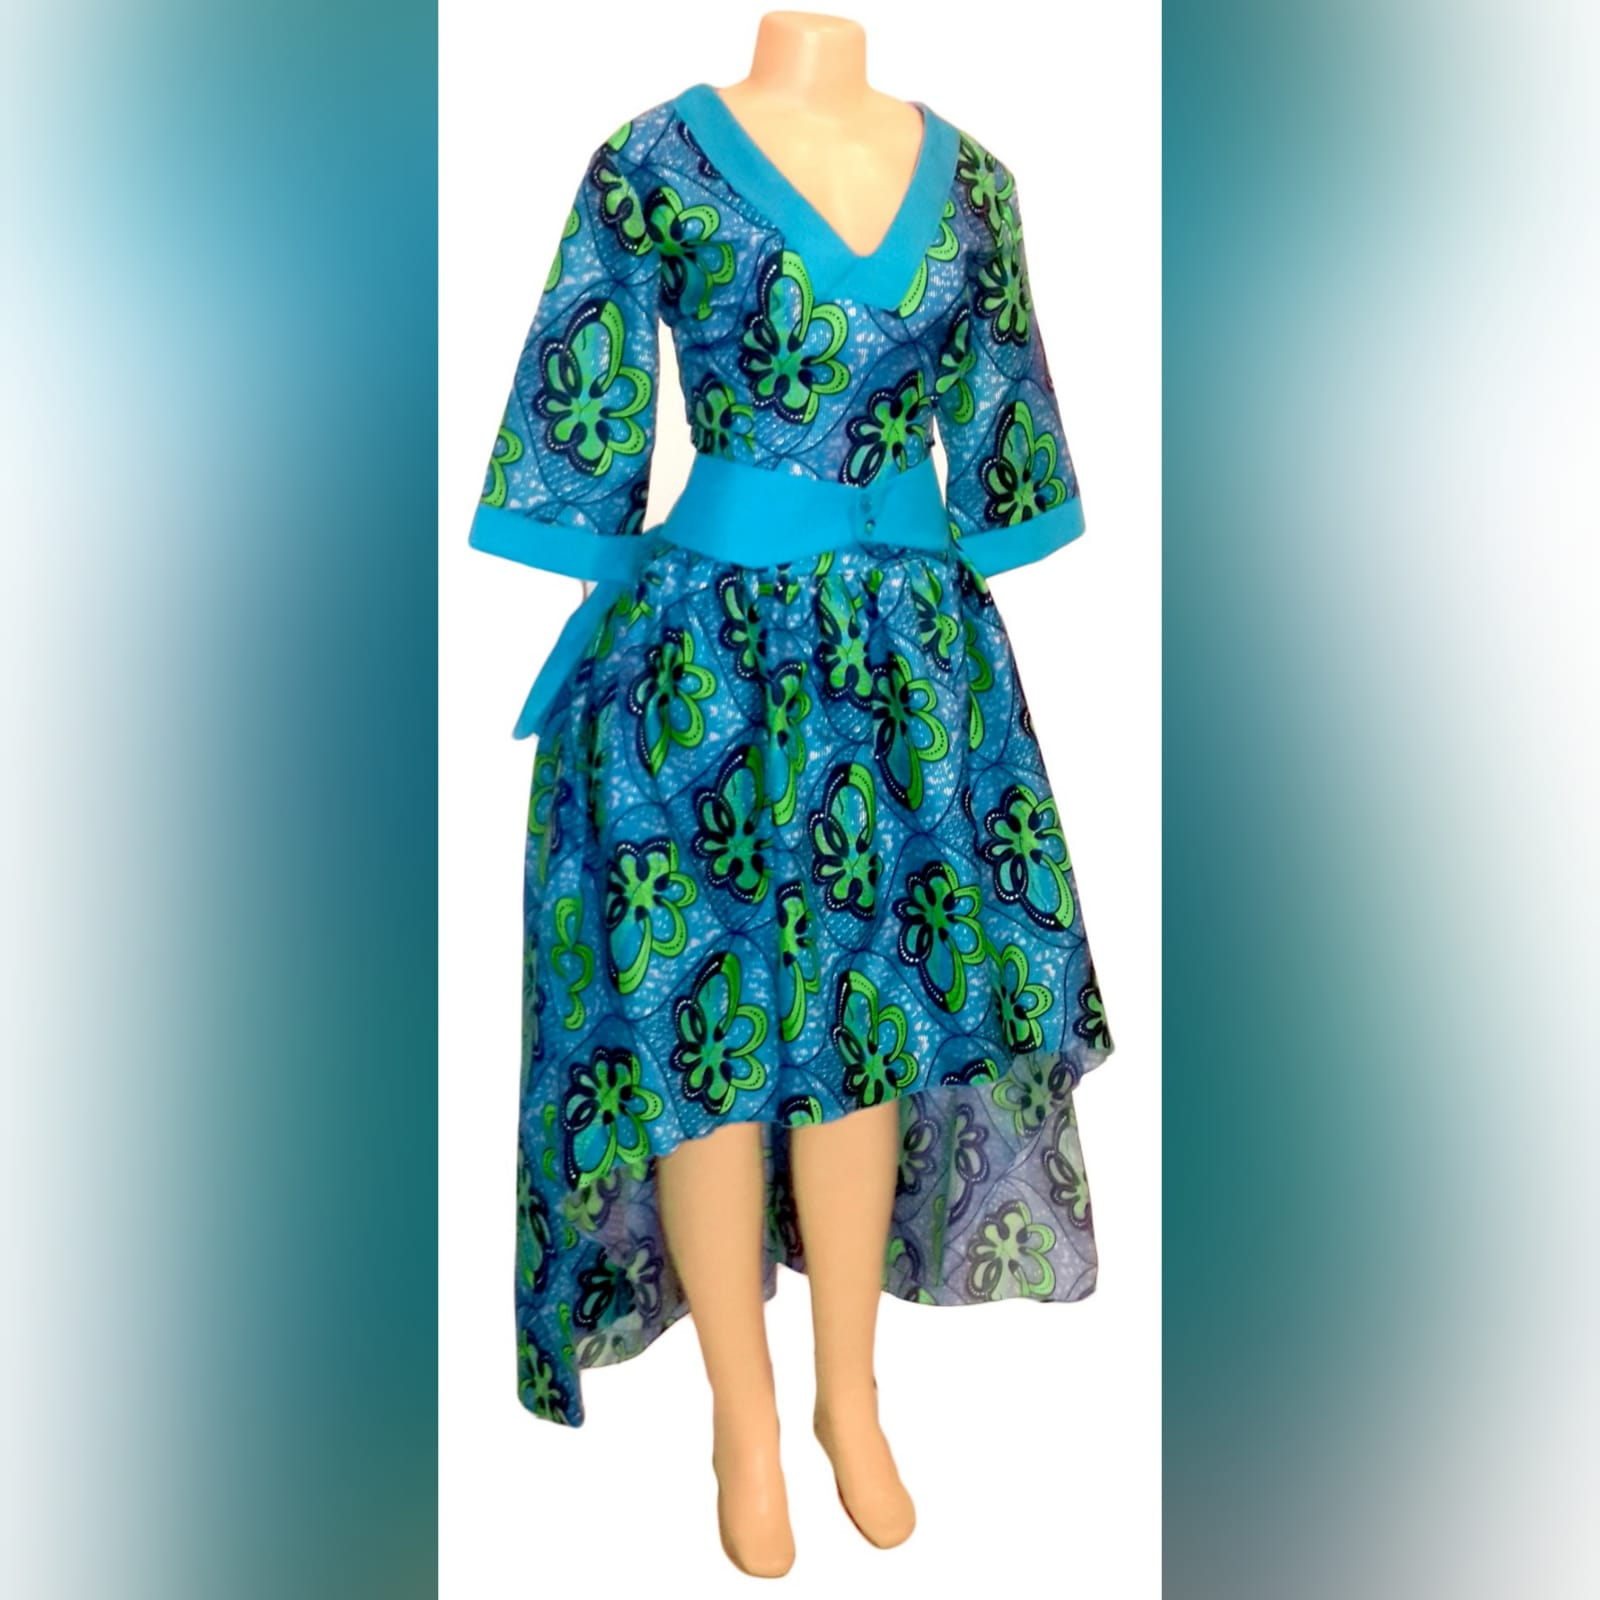 Modern traditional green and blue high low dress 5 modern traditional green and blue hi lo dress with a v neckline, 3/4 sleeves and a back peplum with a waistbelt. Matching doek.